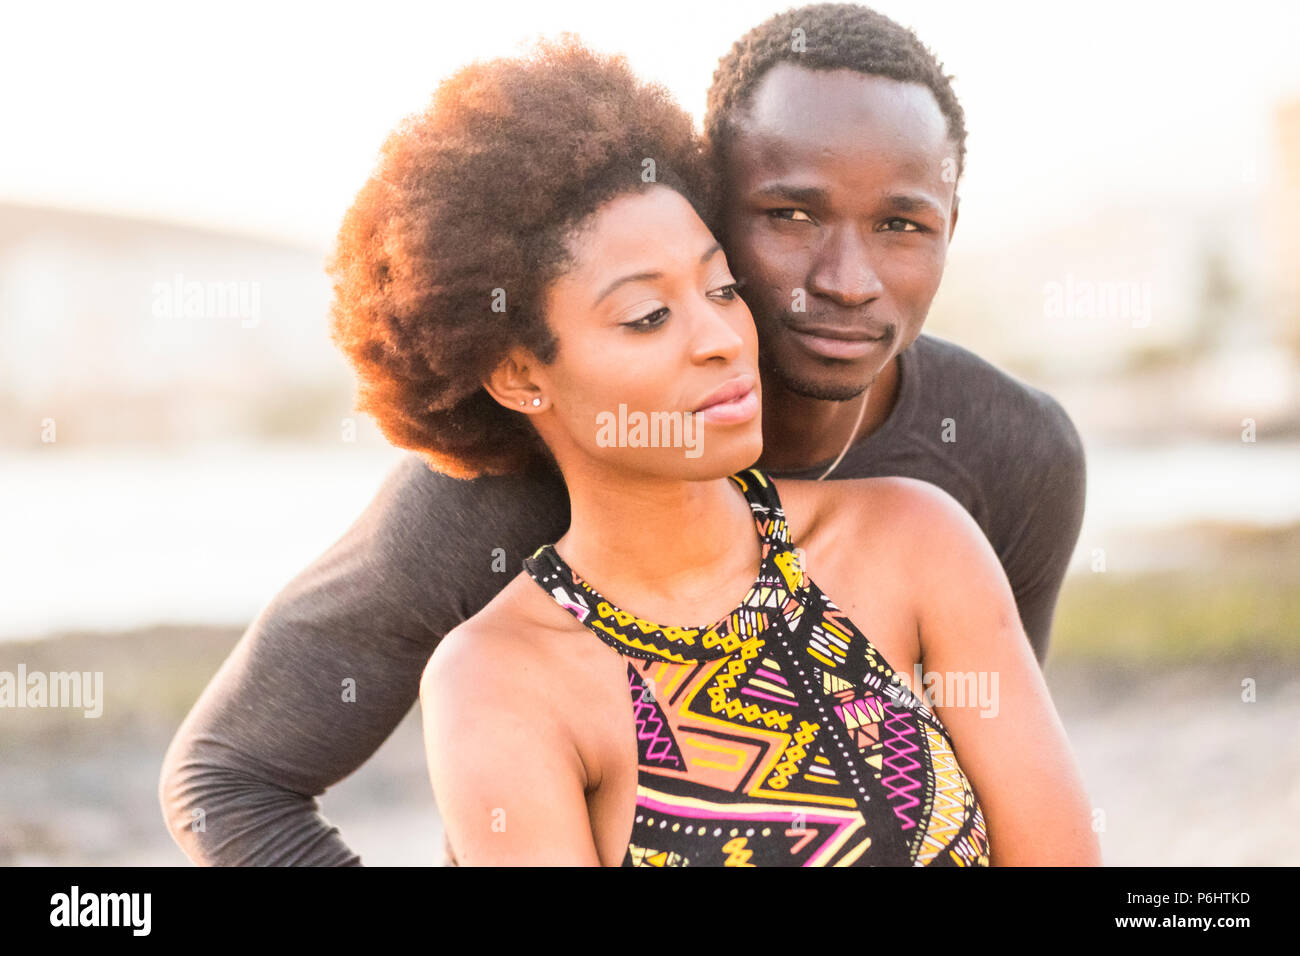 happy black race african couple at the beach in love and enjoying the leisure activity together sitting near the ocean coast summer time and loves vib - Stock Image